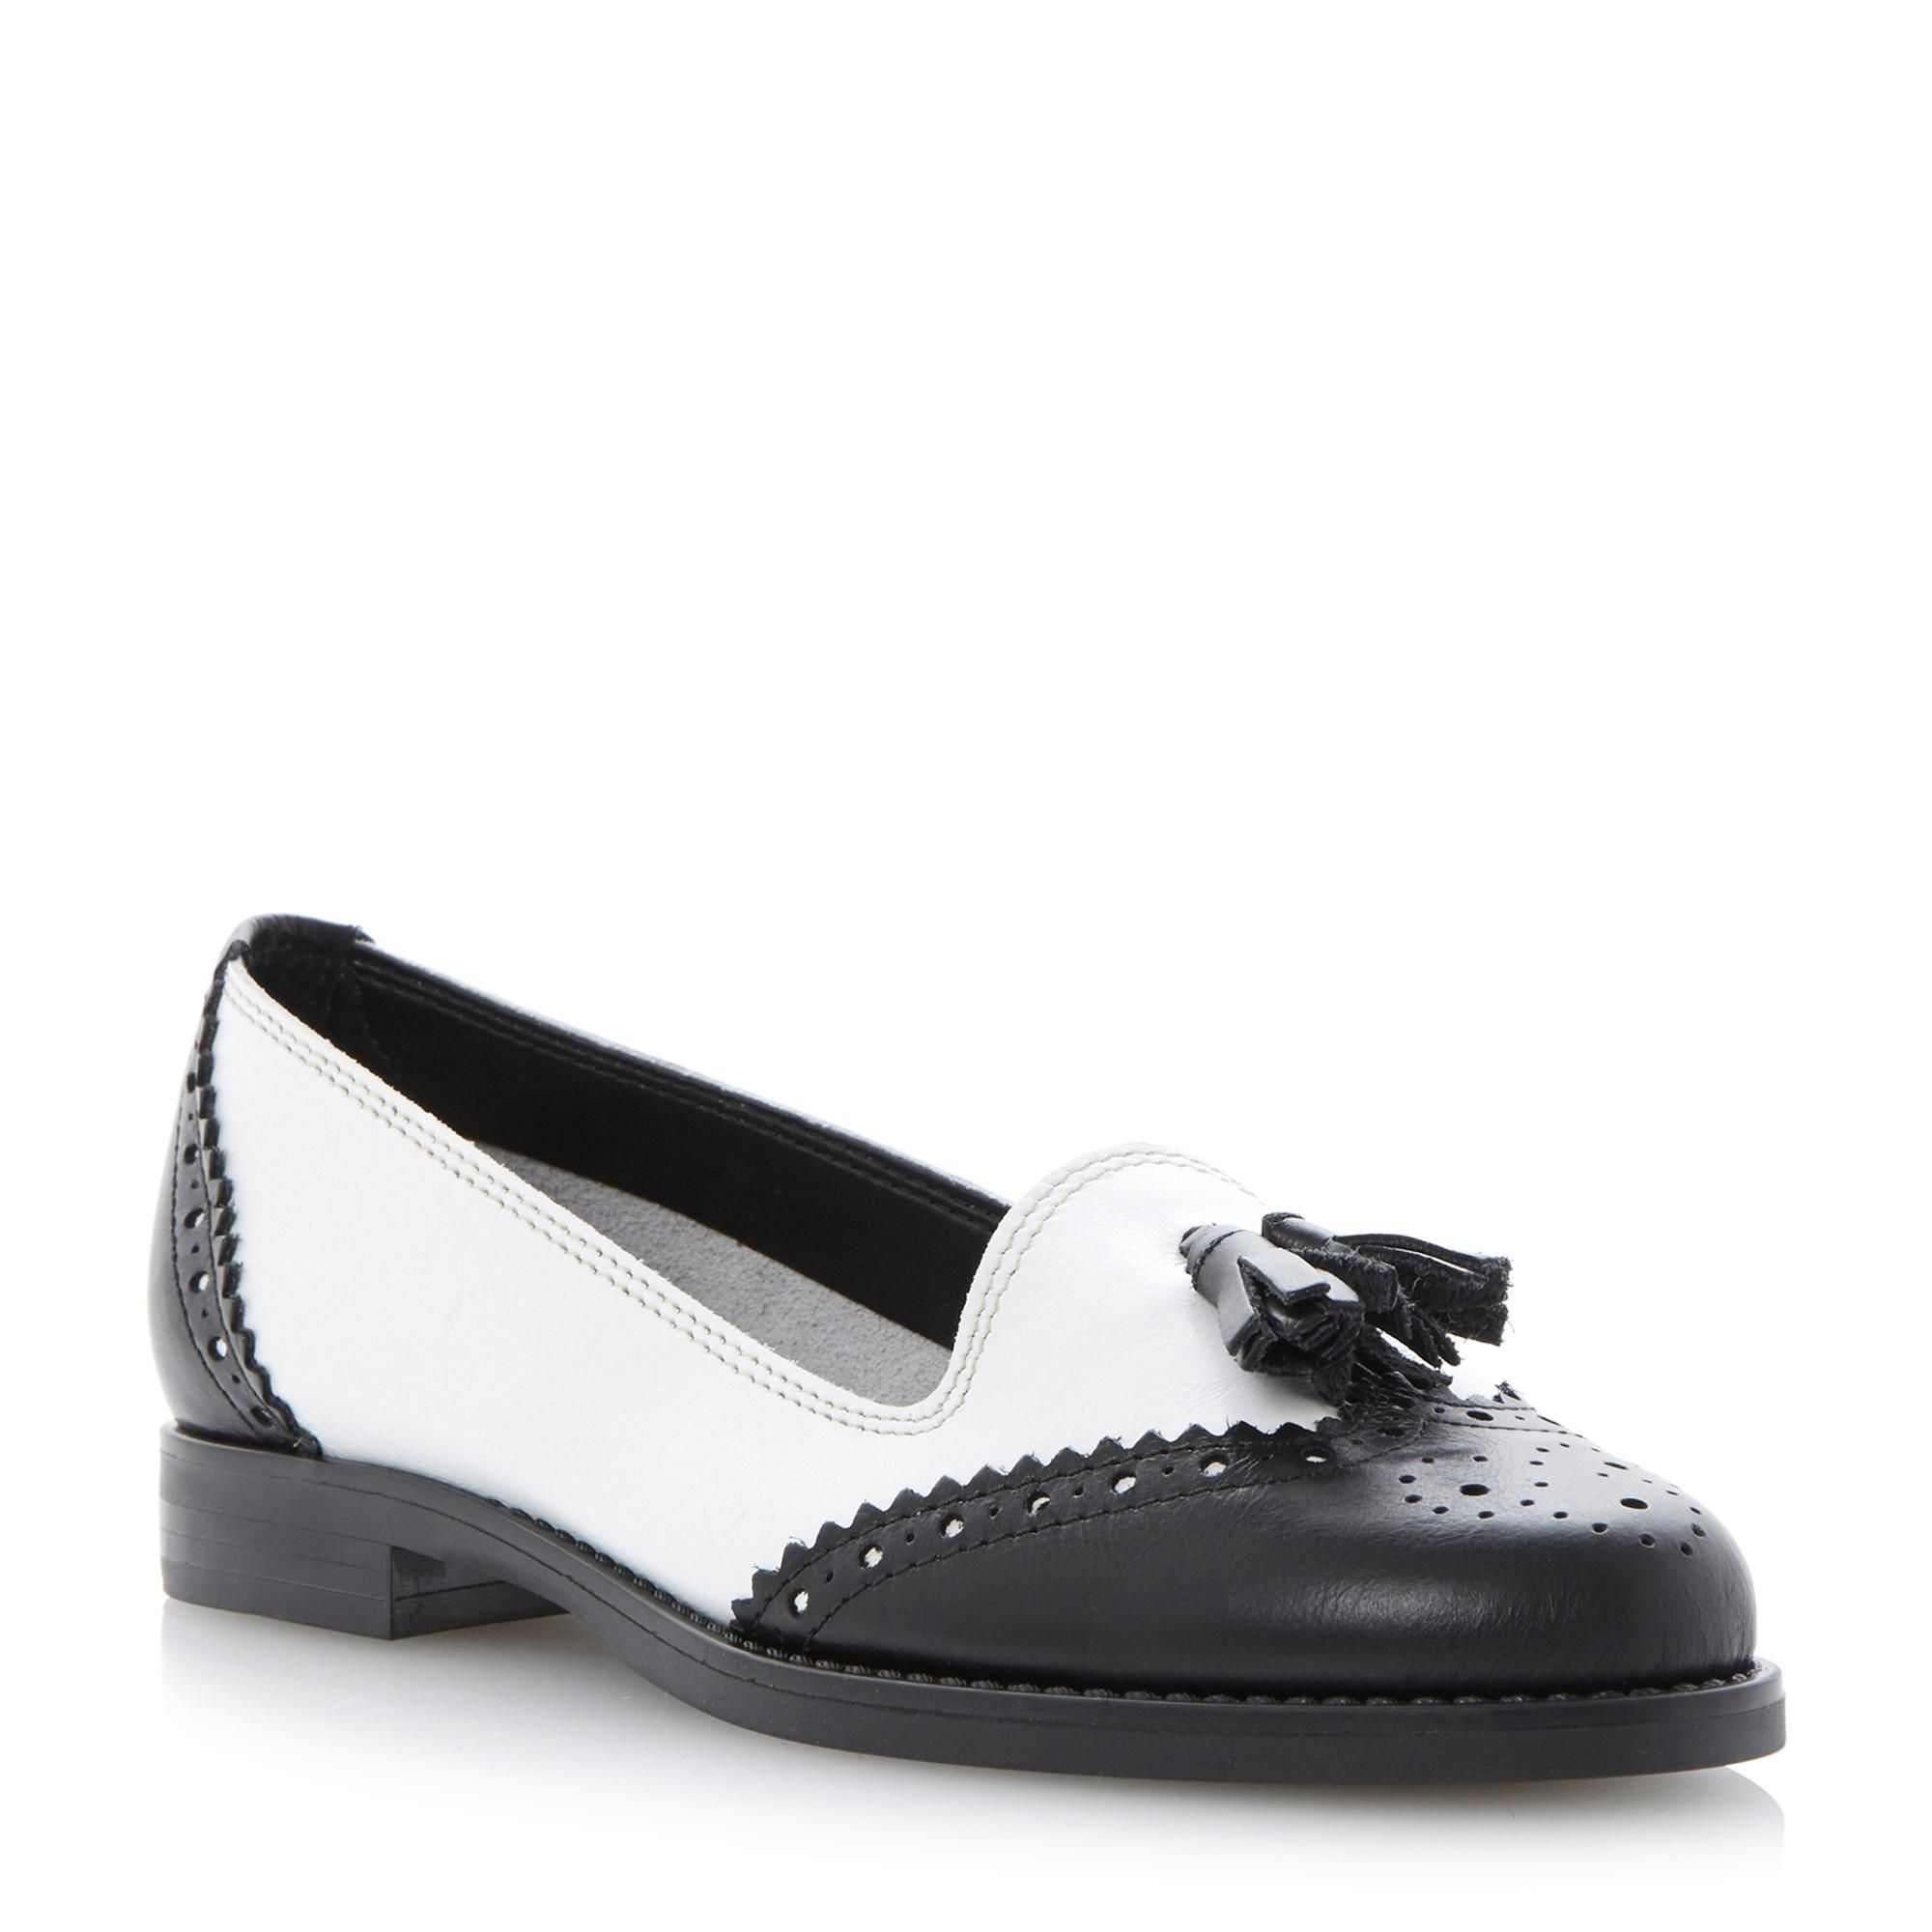 Black Patent Faux Patent Leather Shoe w White Rubber Outsole by Liliana